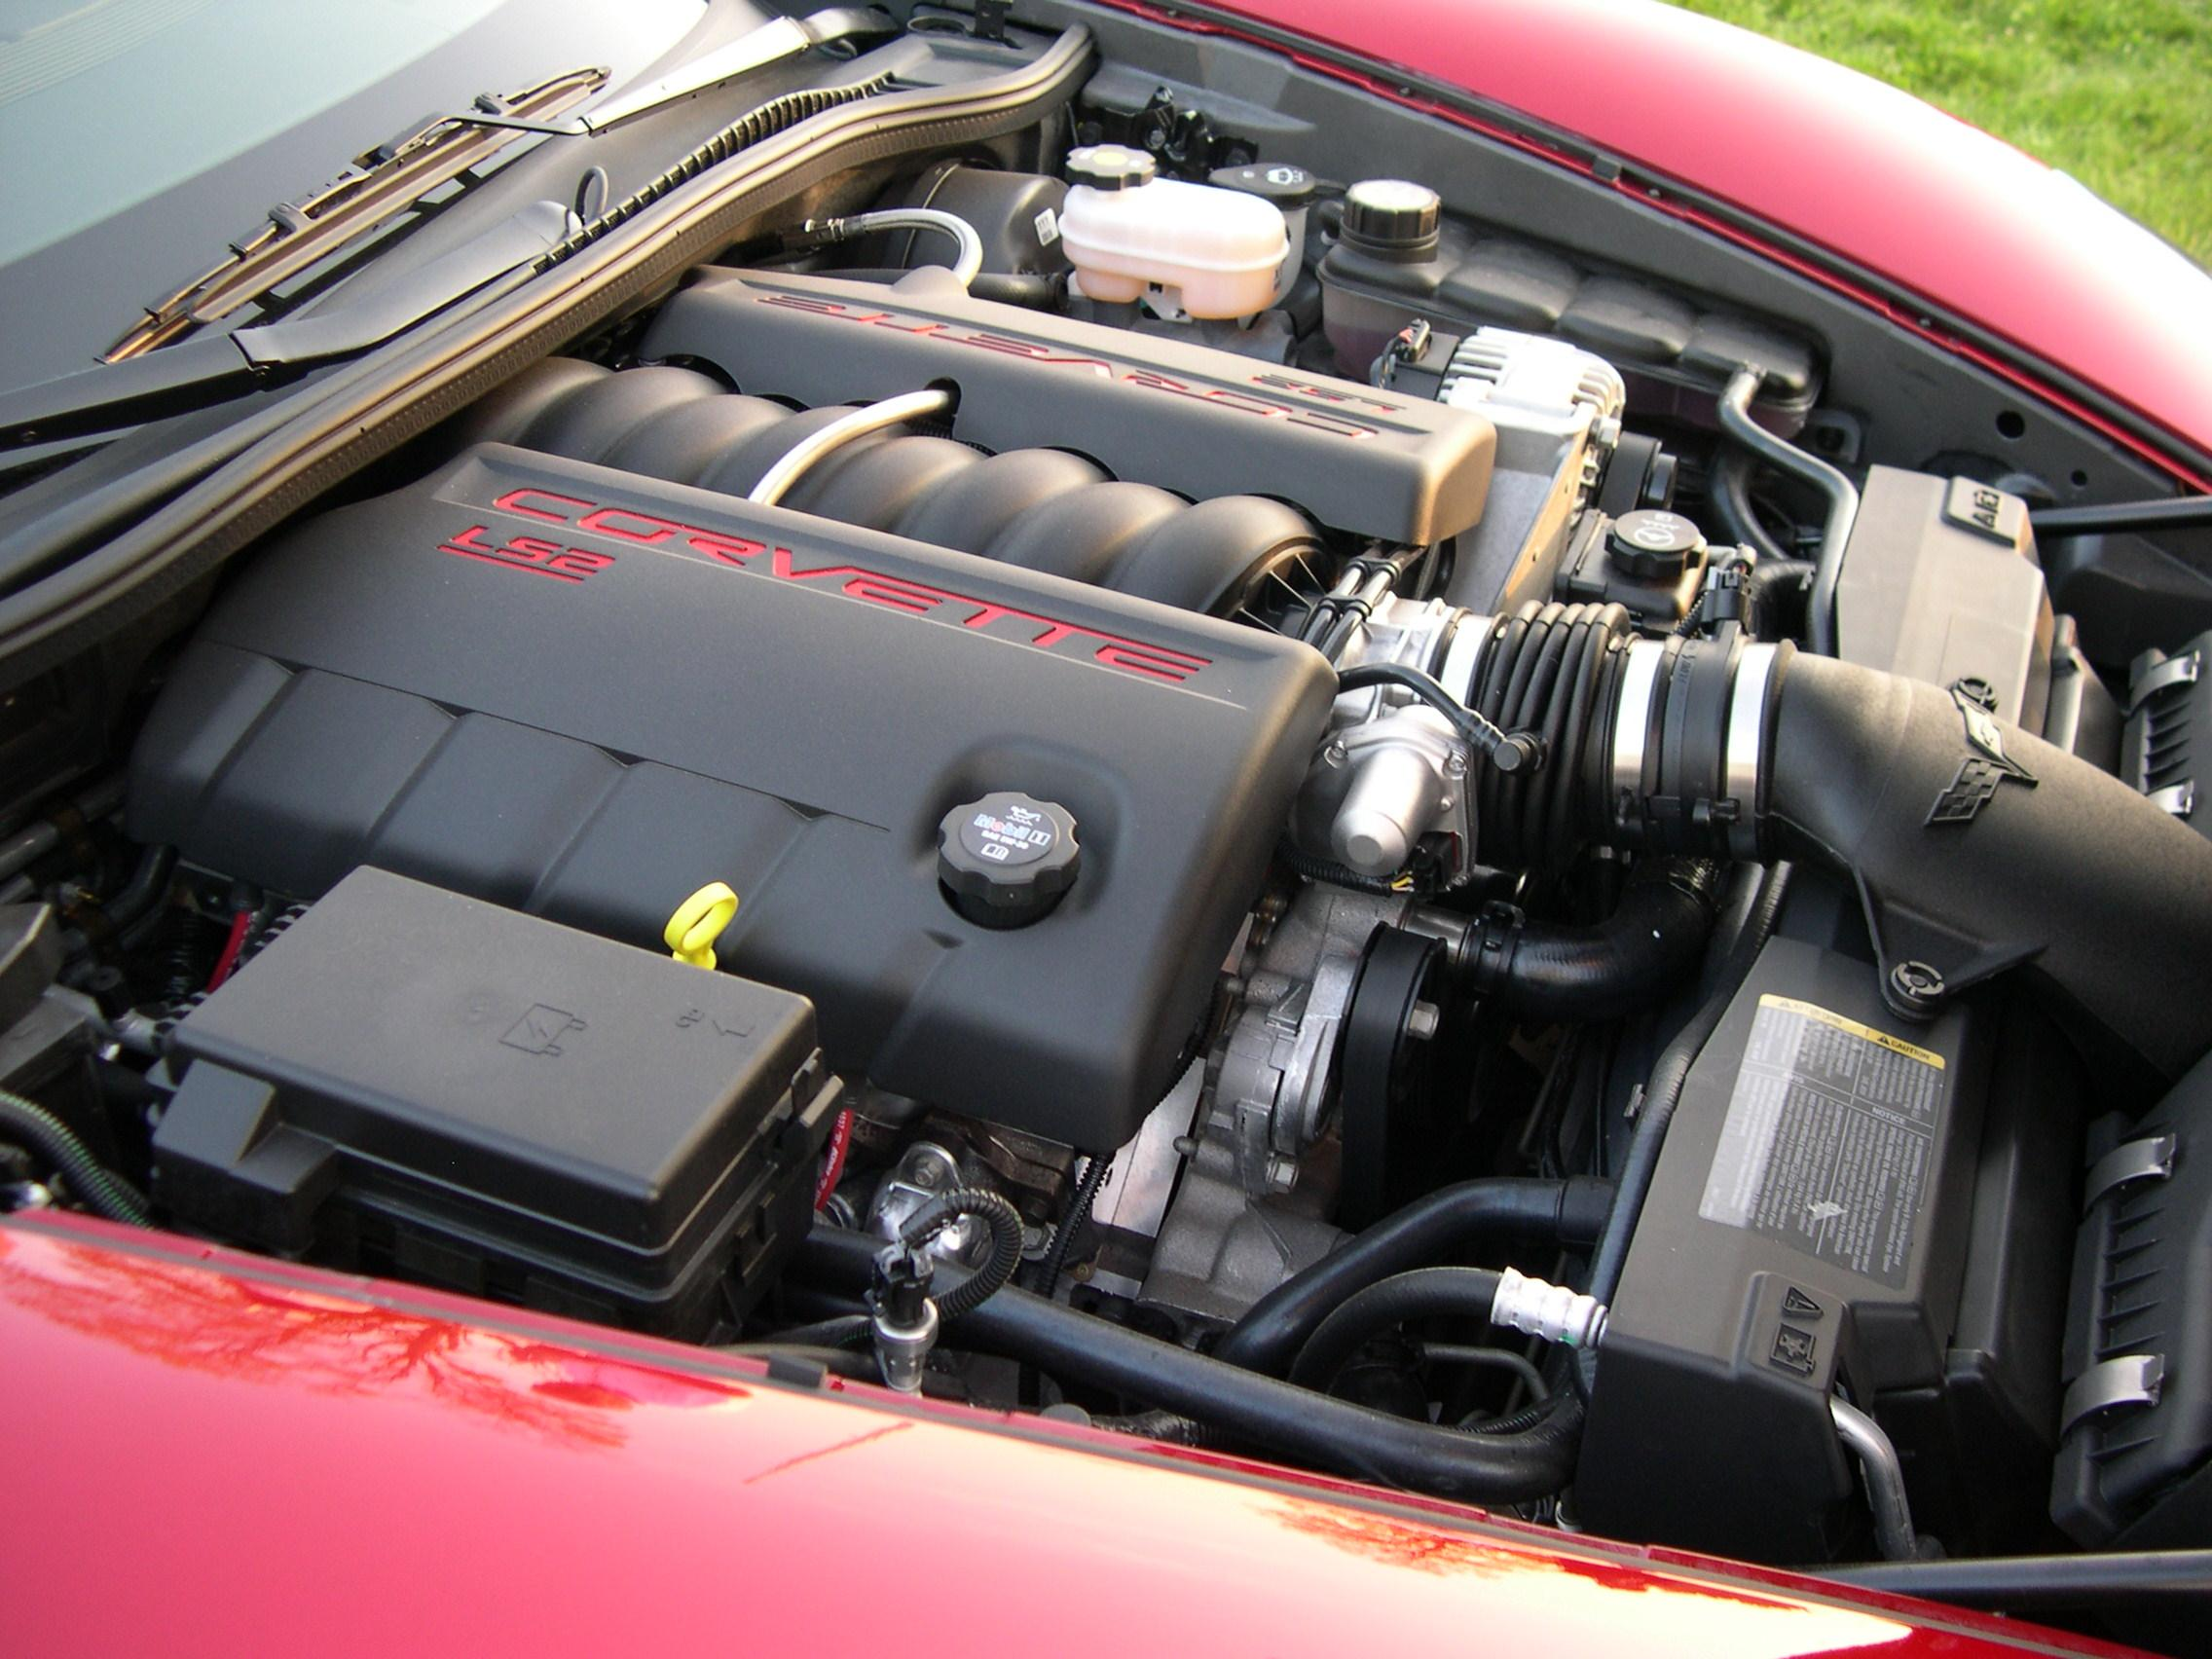 File:GM LS2 engine.jpg